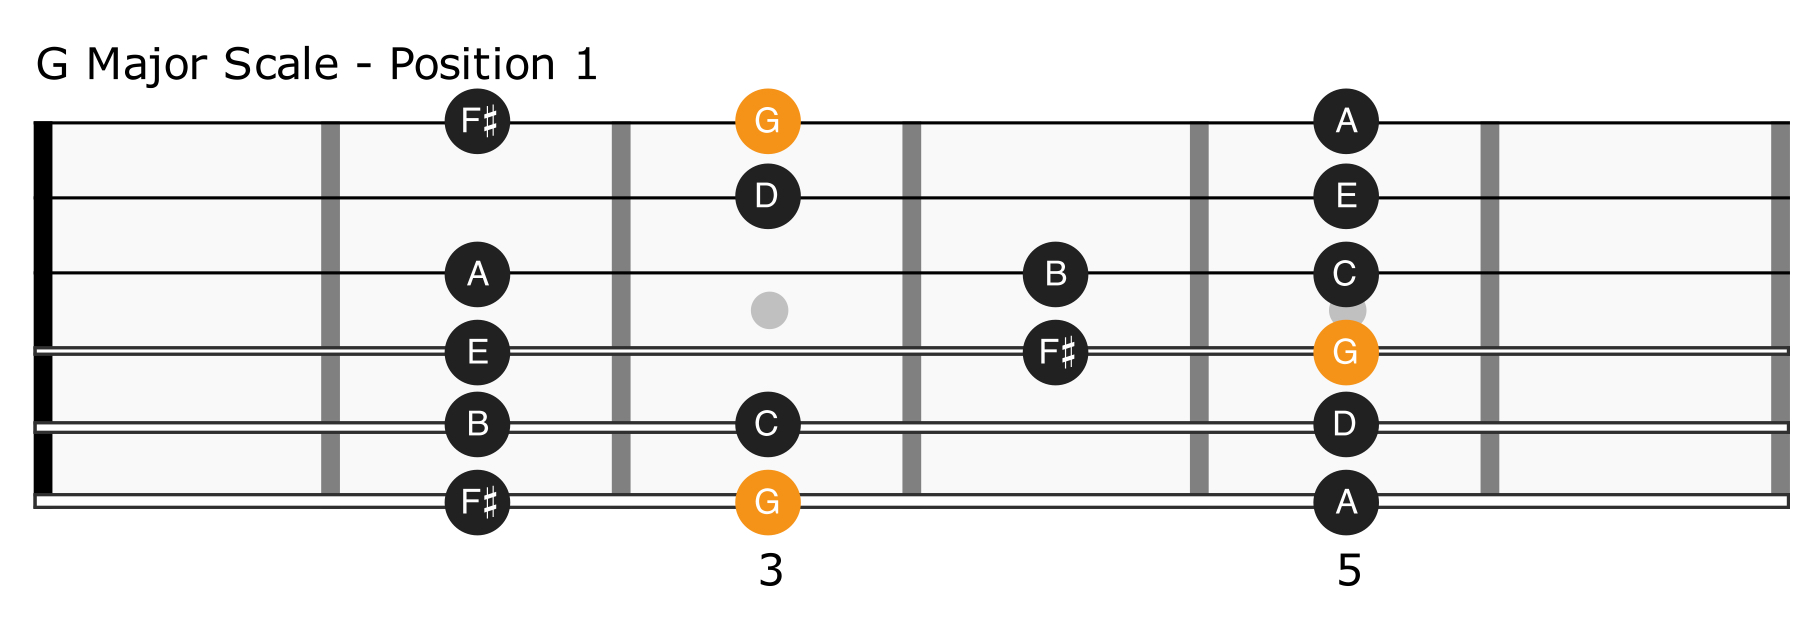 G Major Scale Position 1